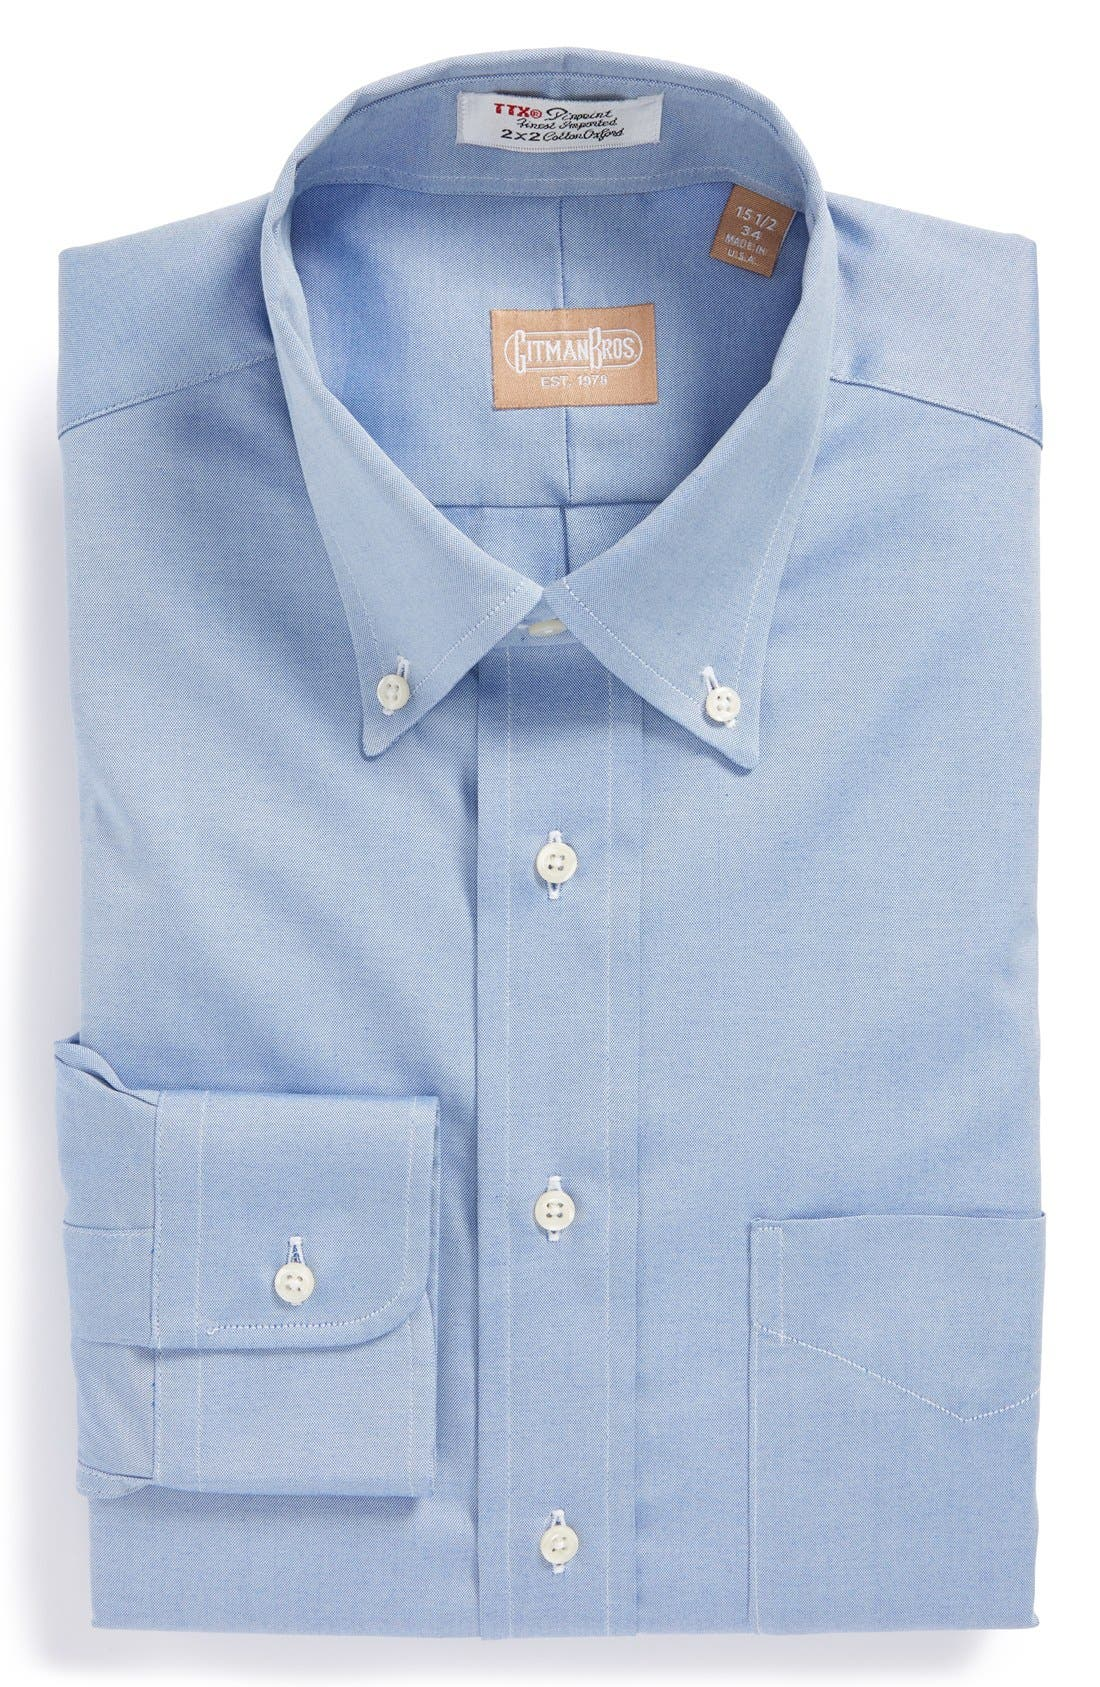 Gitman Regular Fit Pinpoint Cotton Oxford Button Down Dress Shirt